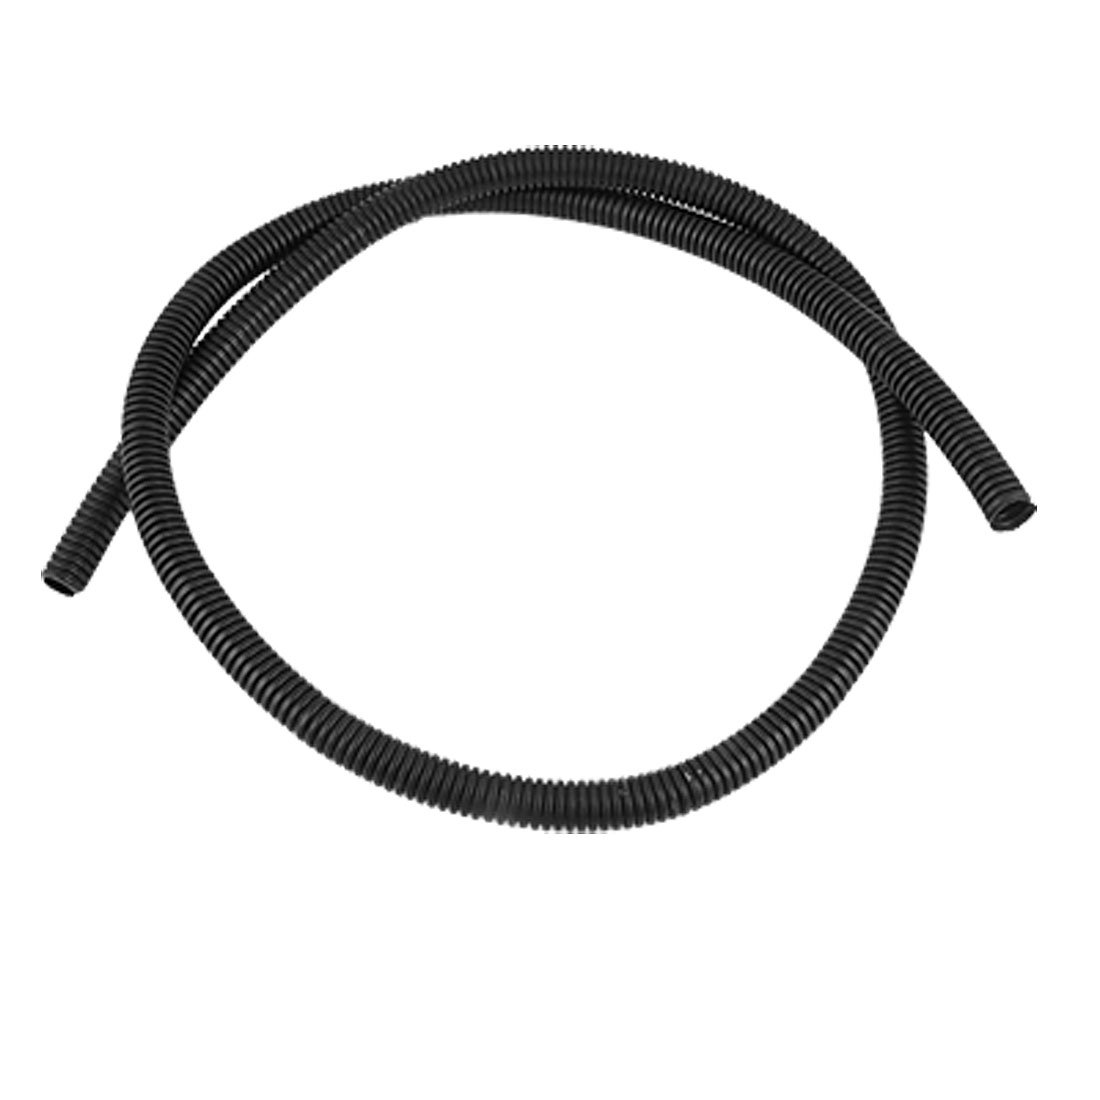 1m Black 13mm Diameter Flexible Corrugated Tube Electric Wire Pvc Electrical Conduit Pipe View Wiring Pigeon Diy Tools